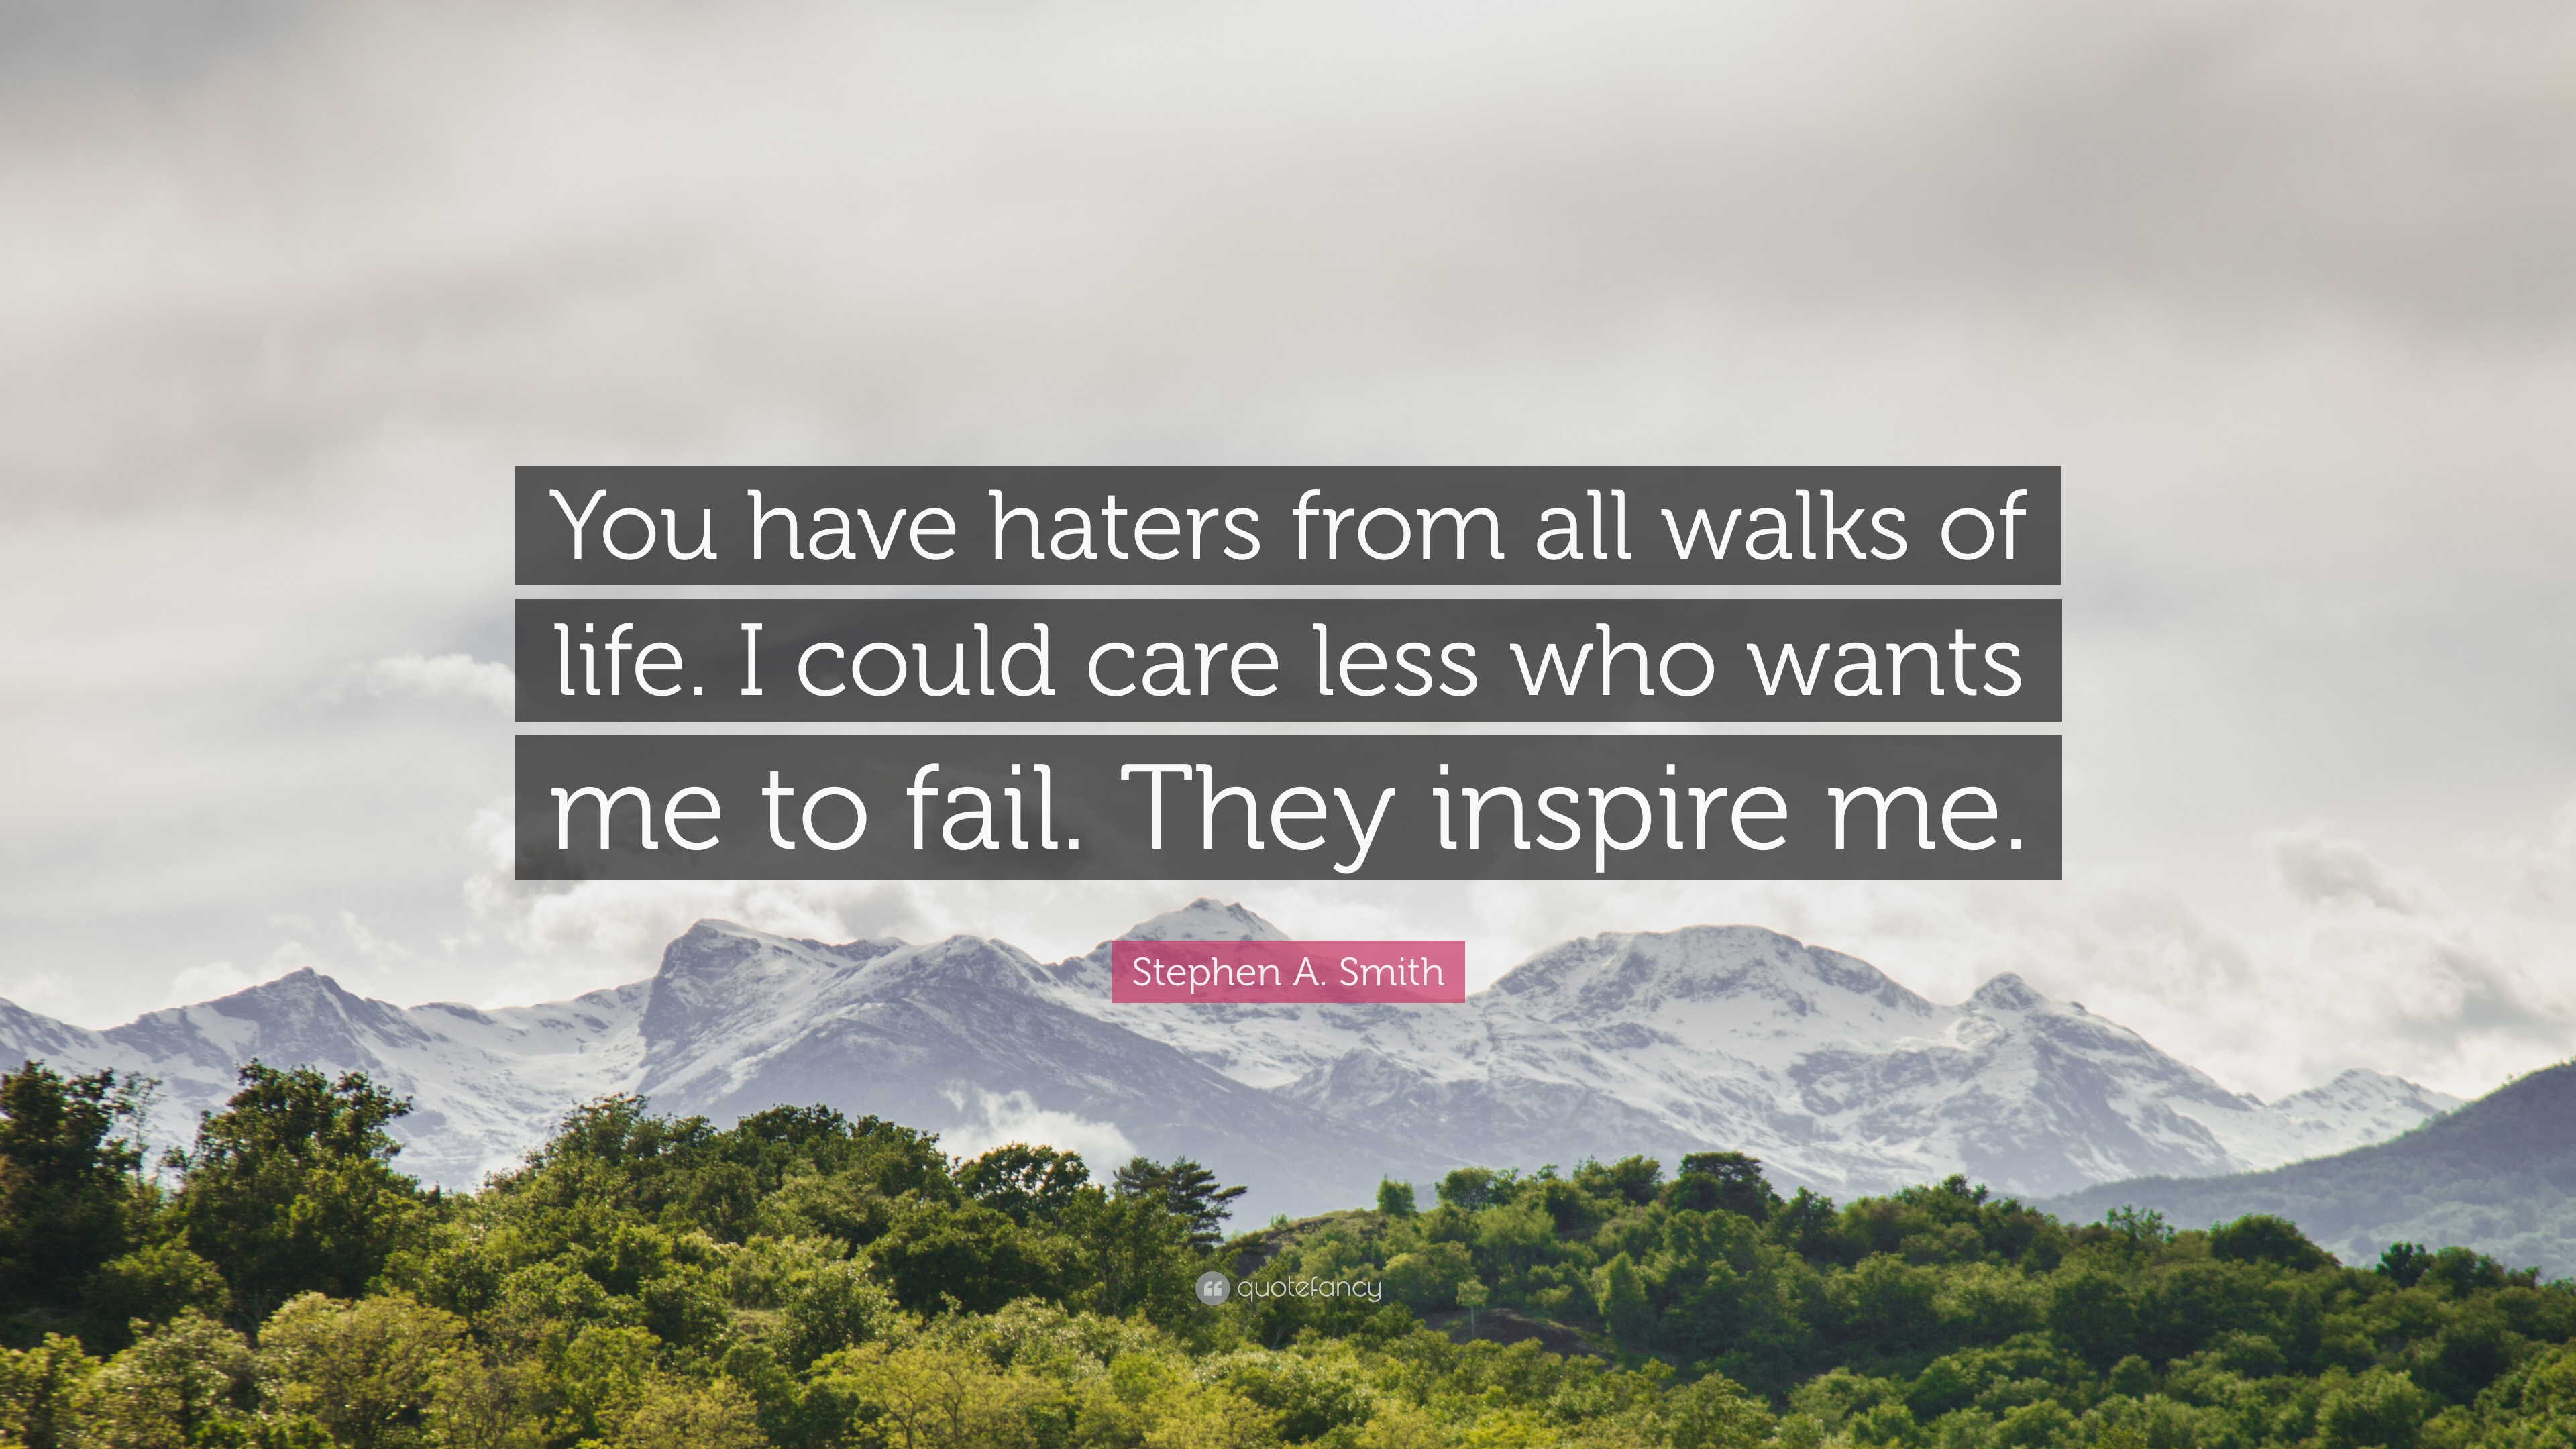 Stephen A Smith Quote You Have Haters From All Walks Of Life I